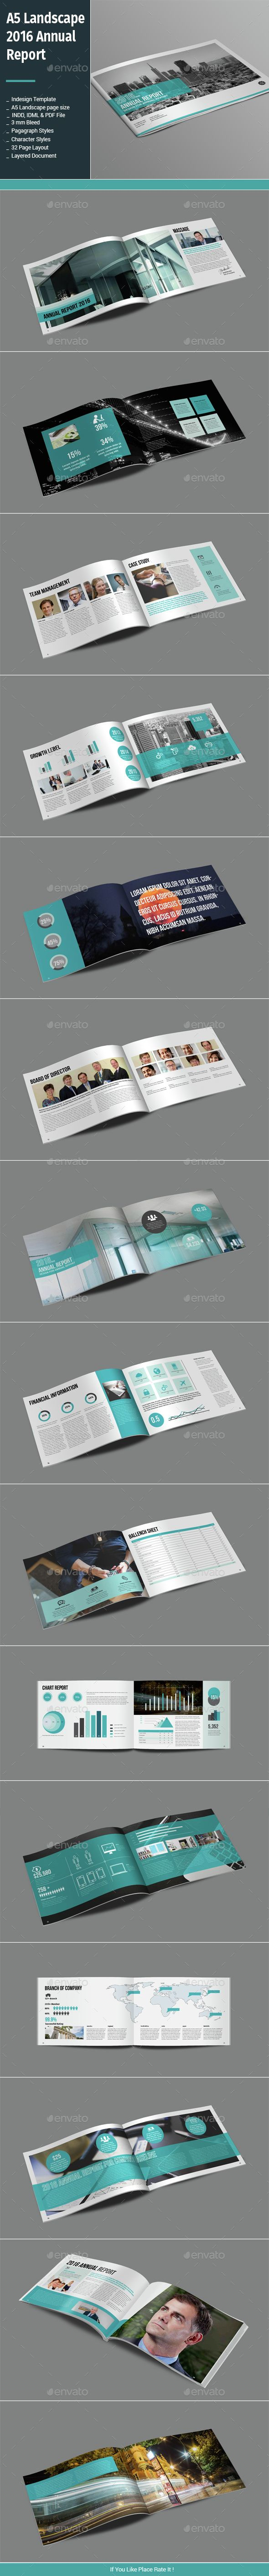 A5 Landscape 2016 Annual Report Indesign Templates